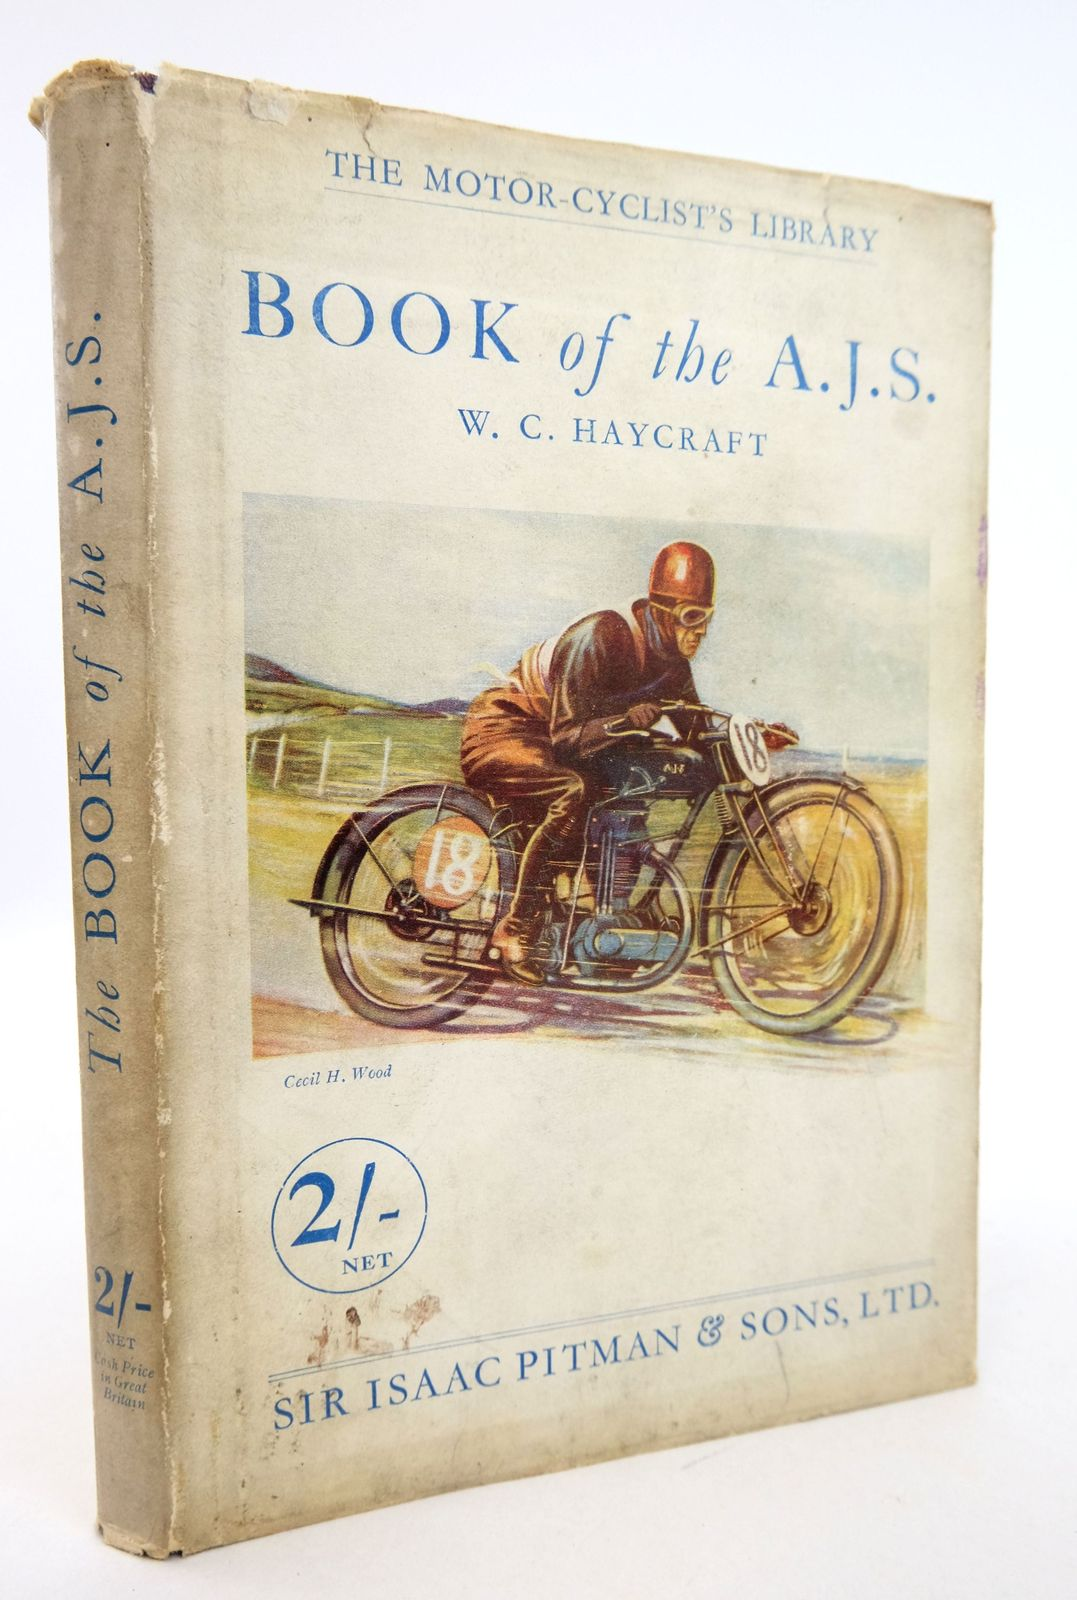 Photo of THE BOOK OF THE A.J.S. (THE MOTORCYCLIST'S LIBRARY)- Stock Number: 1819456